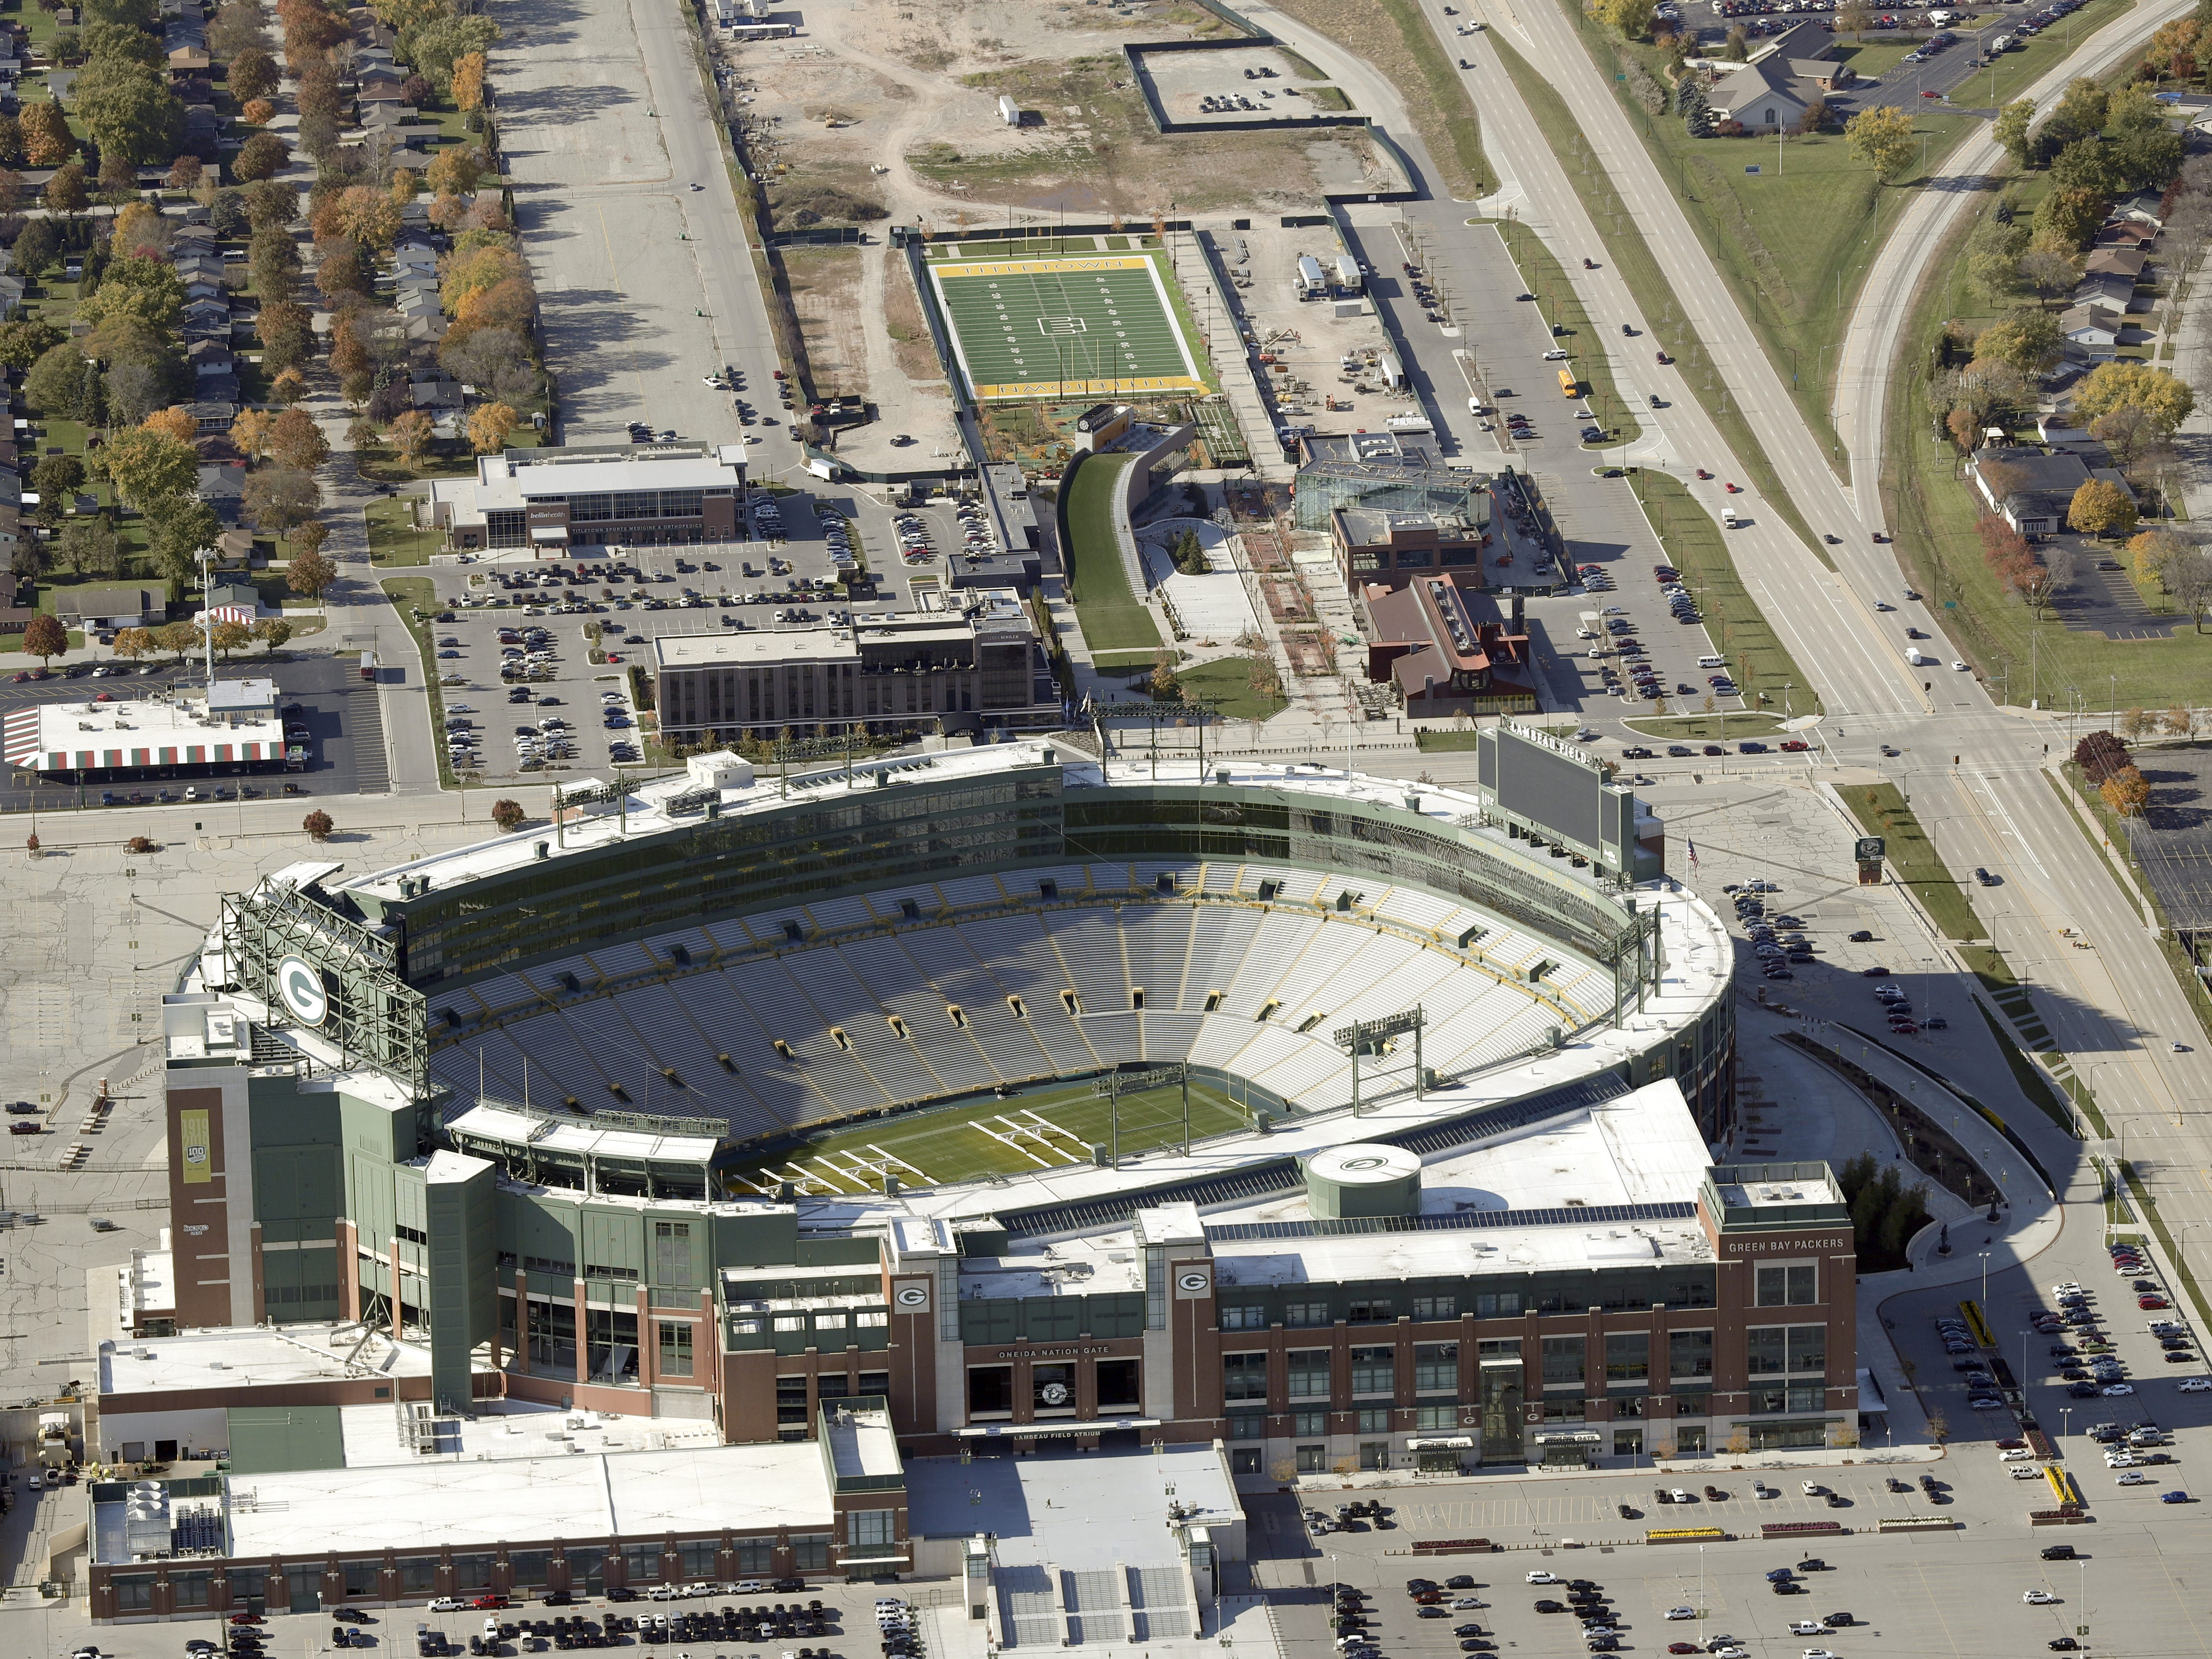 Lambeau Field and the Green Bay Packers' Titletown District development.